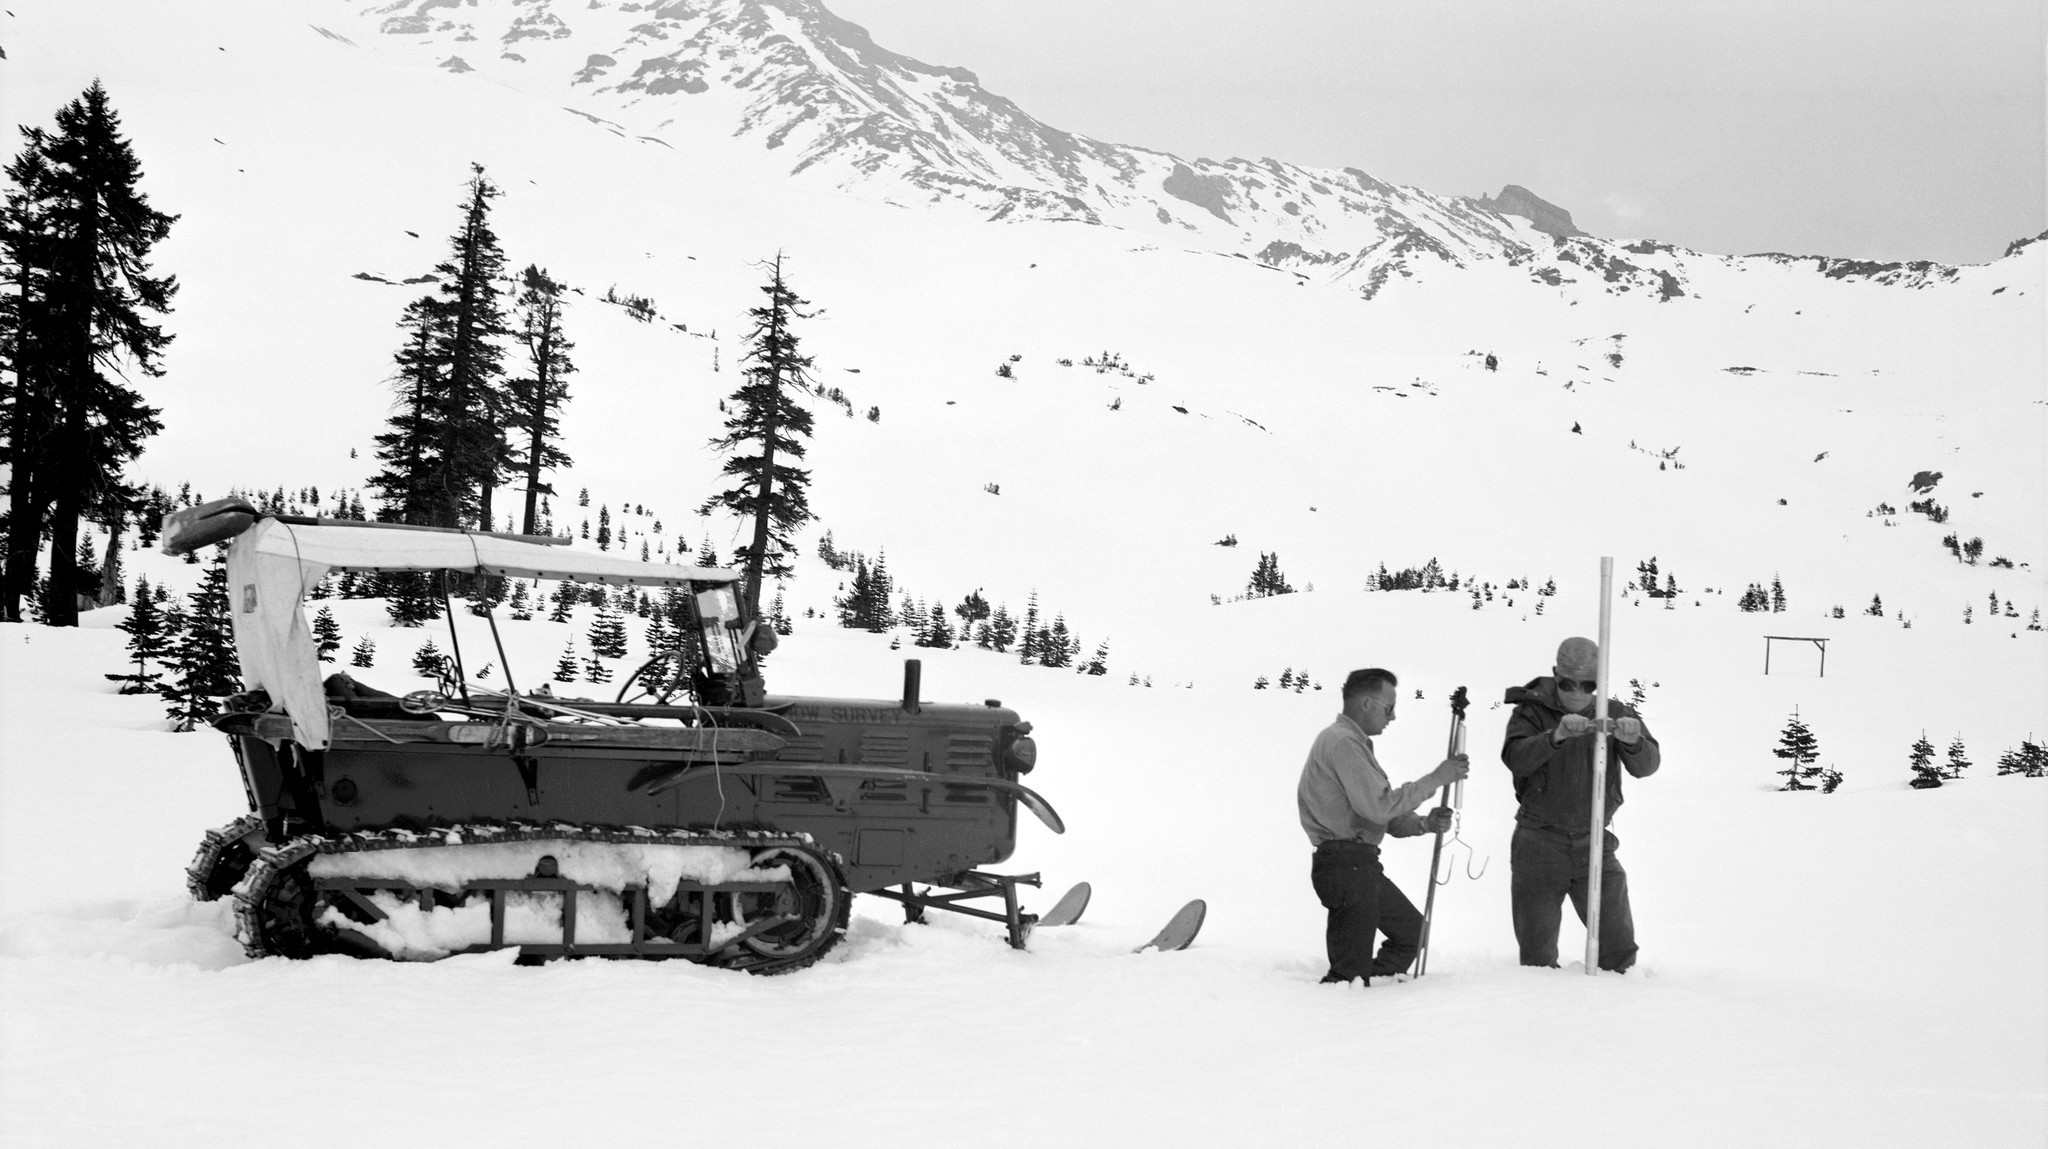 California Department of Water Resources workers conduct a Sierra snowpack survey in El Dorado County in 1958. The measuring methods haven't changed much since then.